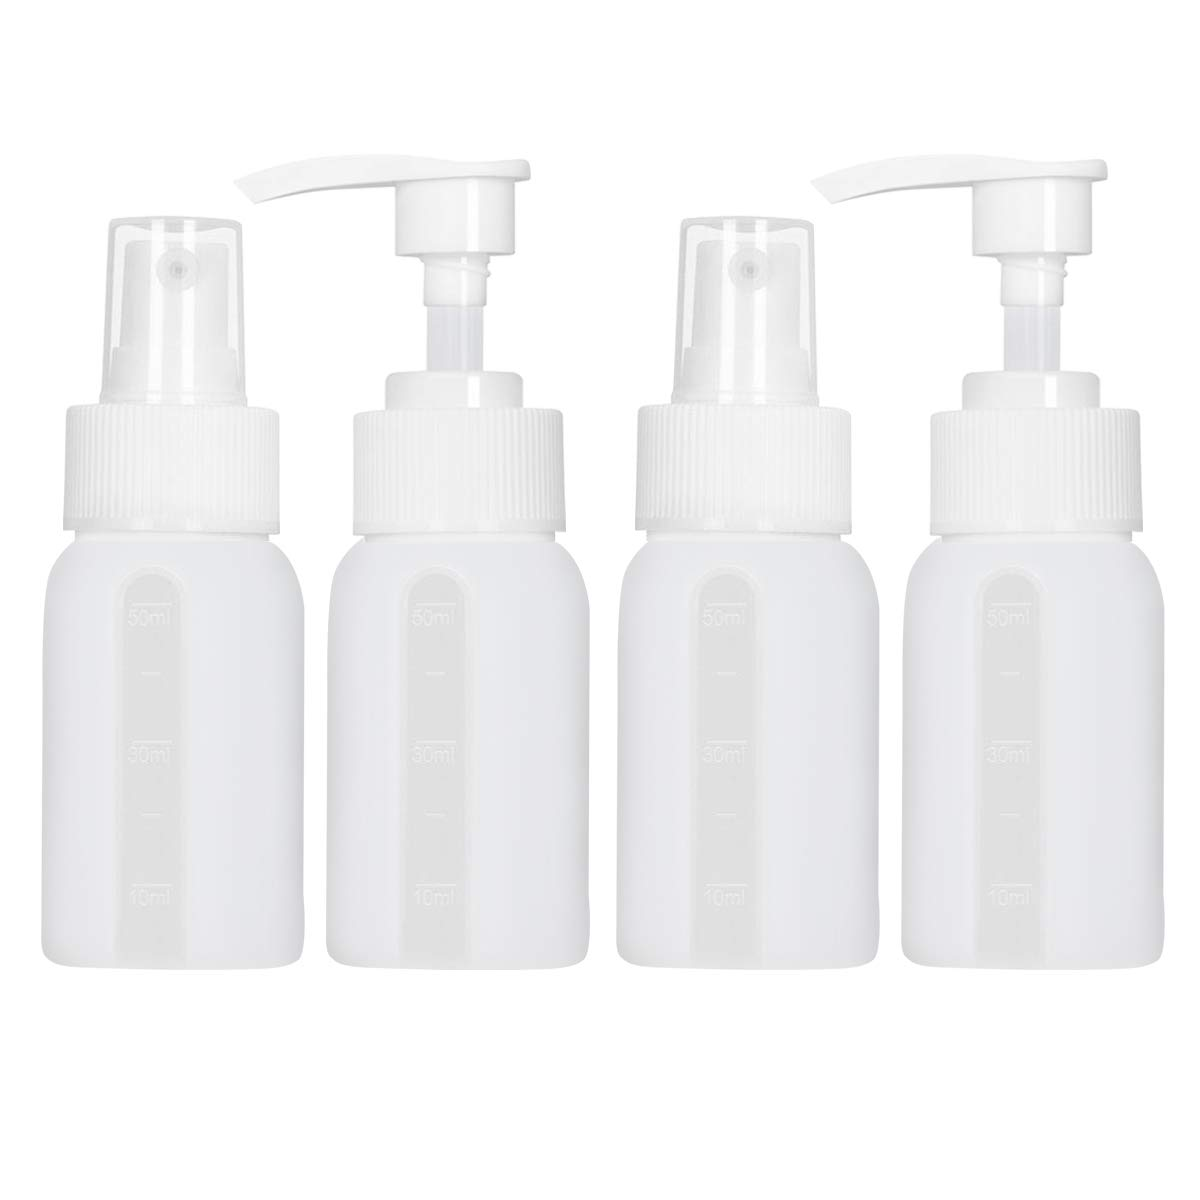 Portable Travel Bottles Food Grade Silicone Mist Spray Pump Bottle Refillable Cosmetic Toiletries Containers Leak Proof Squeezable 1.7 OZ 4 Pack(White)